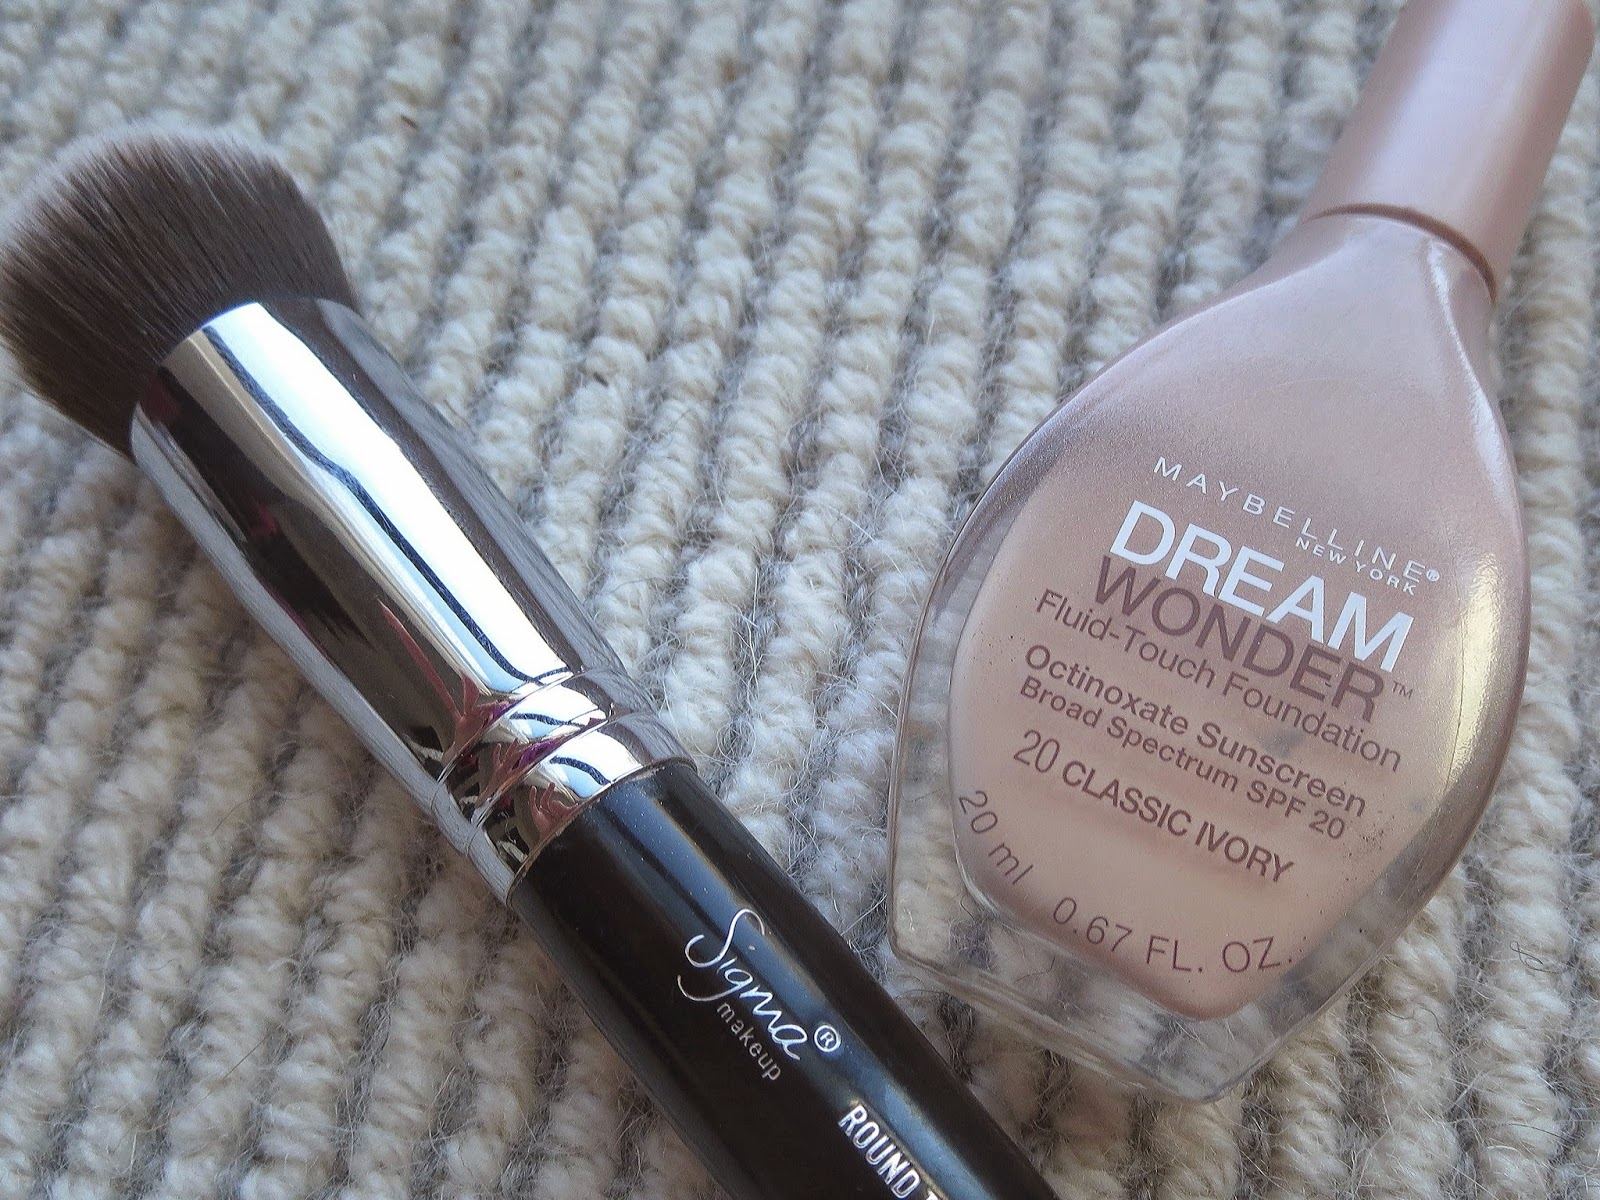 a picture of Maybelline Dream Wonder Foundation with Sigma F82 brush